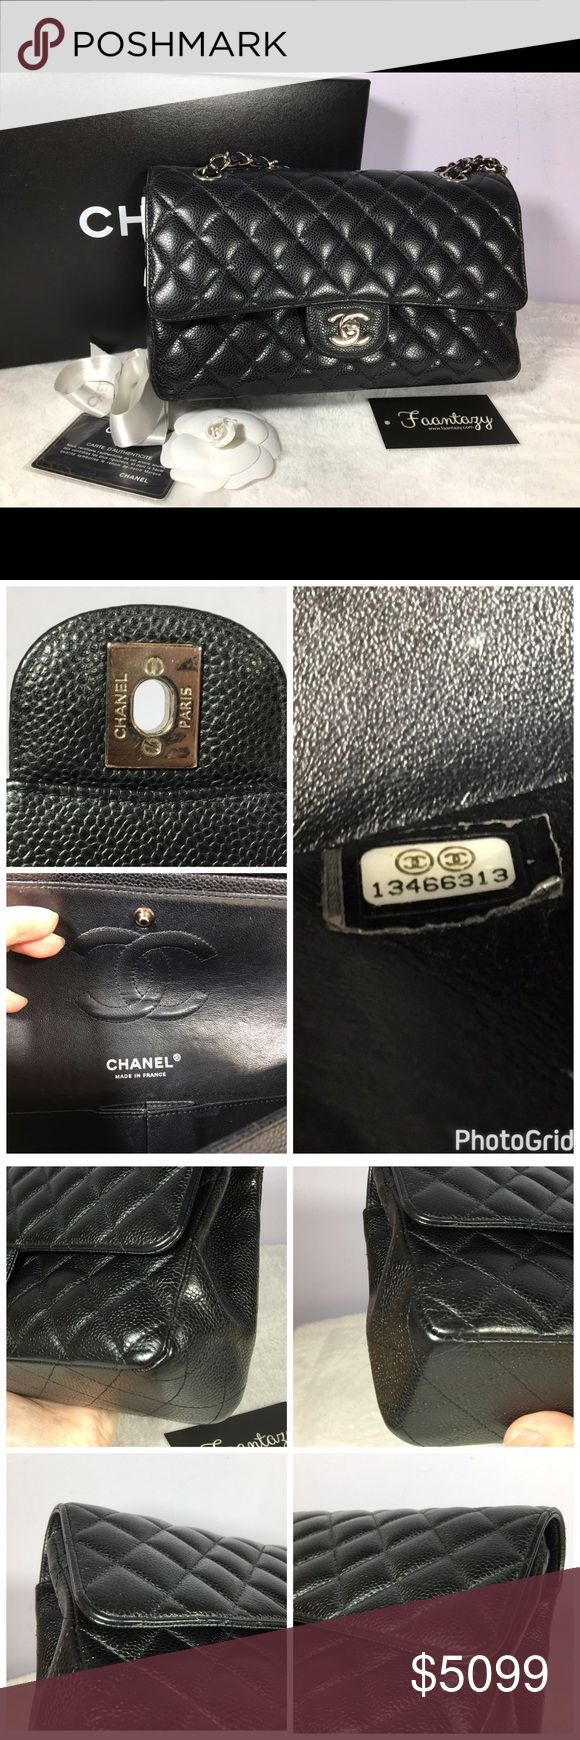 Auth Chanel medium double flap cavair 100%authentic Chanel Double flap caviar bag. Excellent used condition with light rubbing on corners. Some hairline scratches on hardware. Comes with box, card, ribbon, serial seal intact CHANEL Bags Crossbody Bags